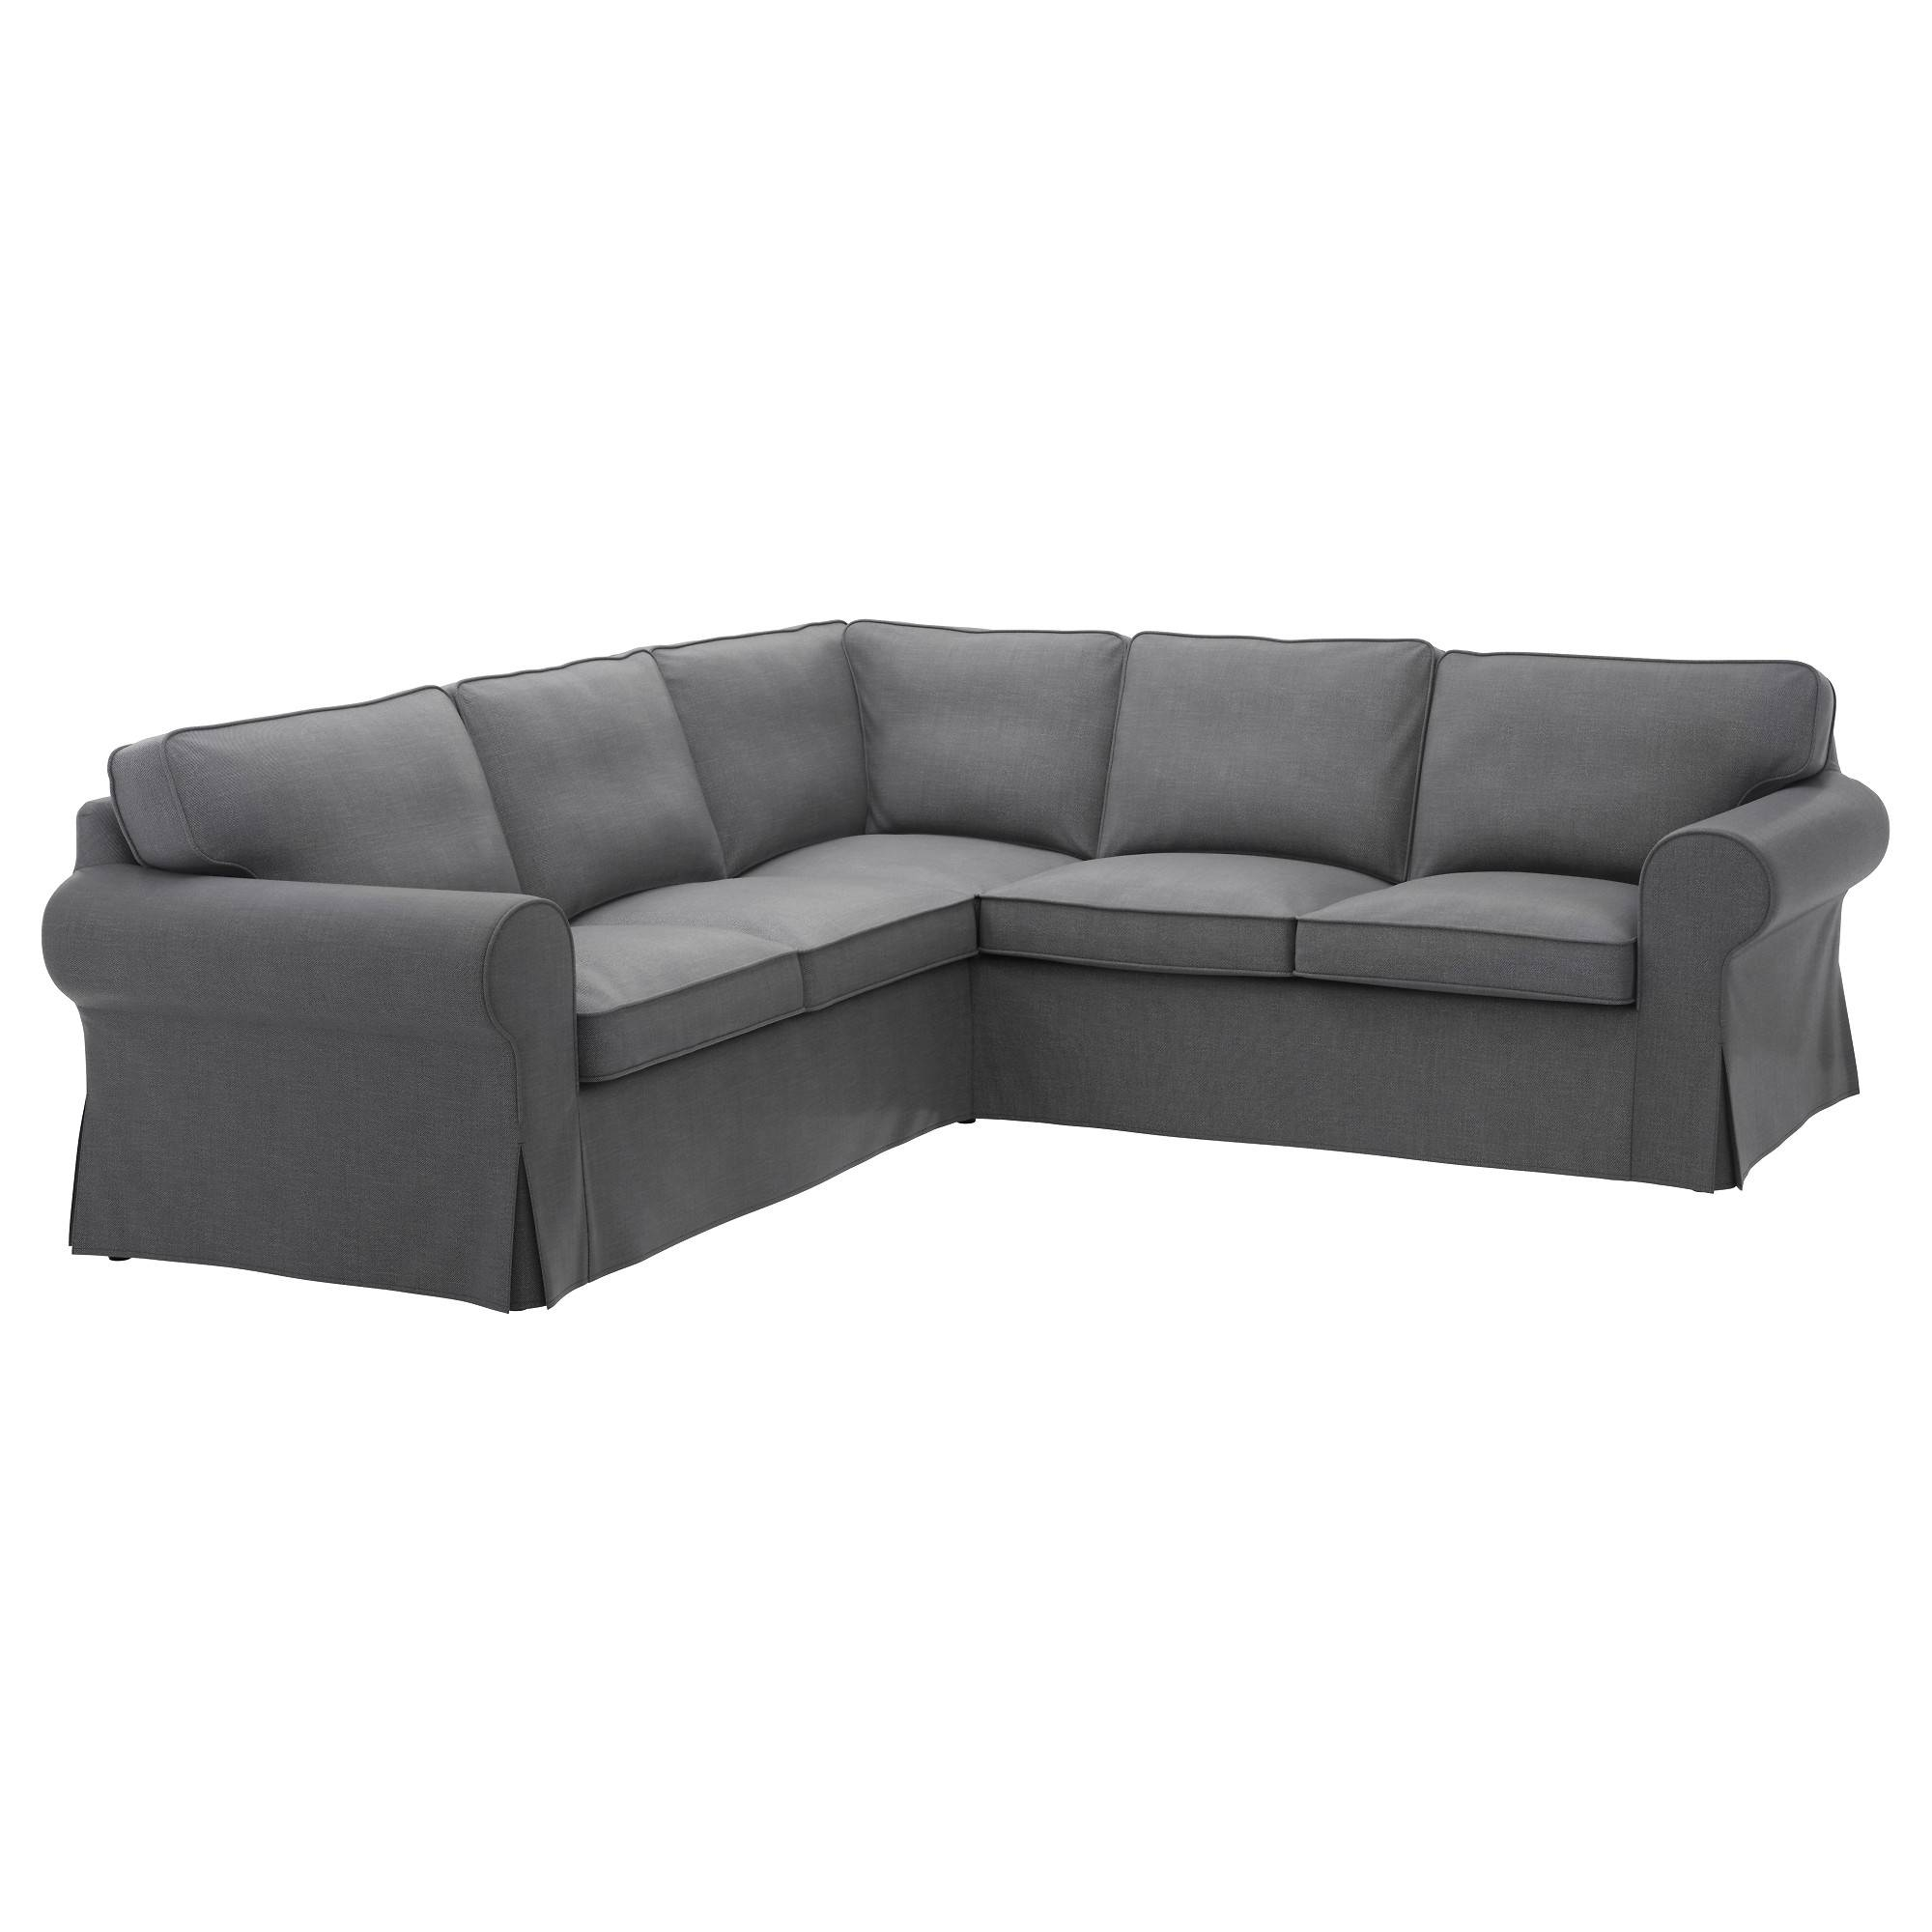 Fabric Sofas - Modern & Contemporary - Ikea throughout Contemporary Fabric Sofas (Image 12 of 30)